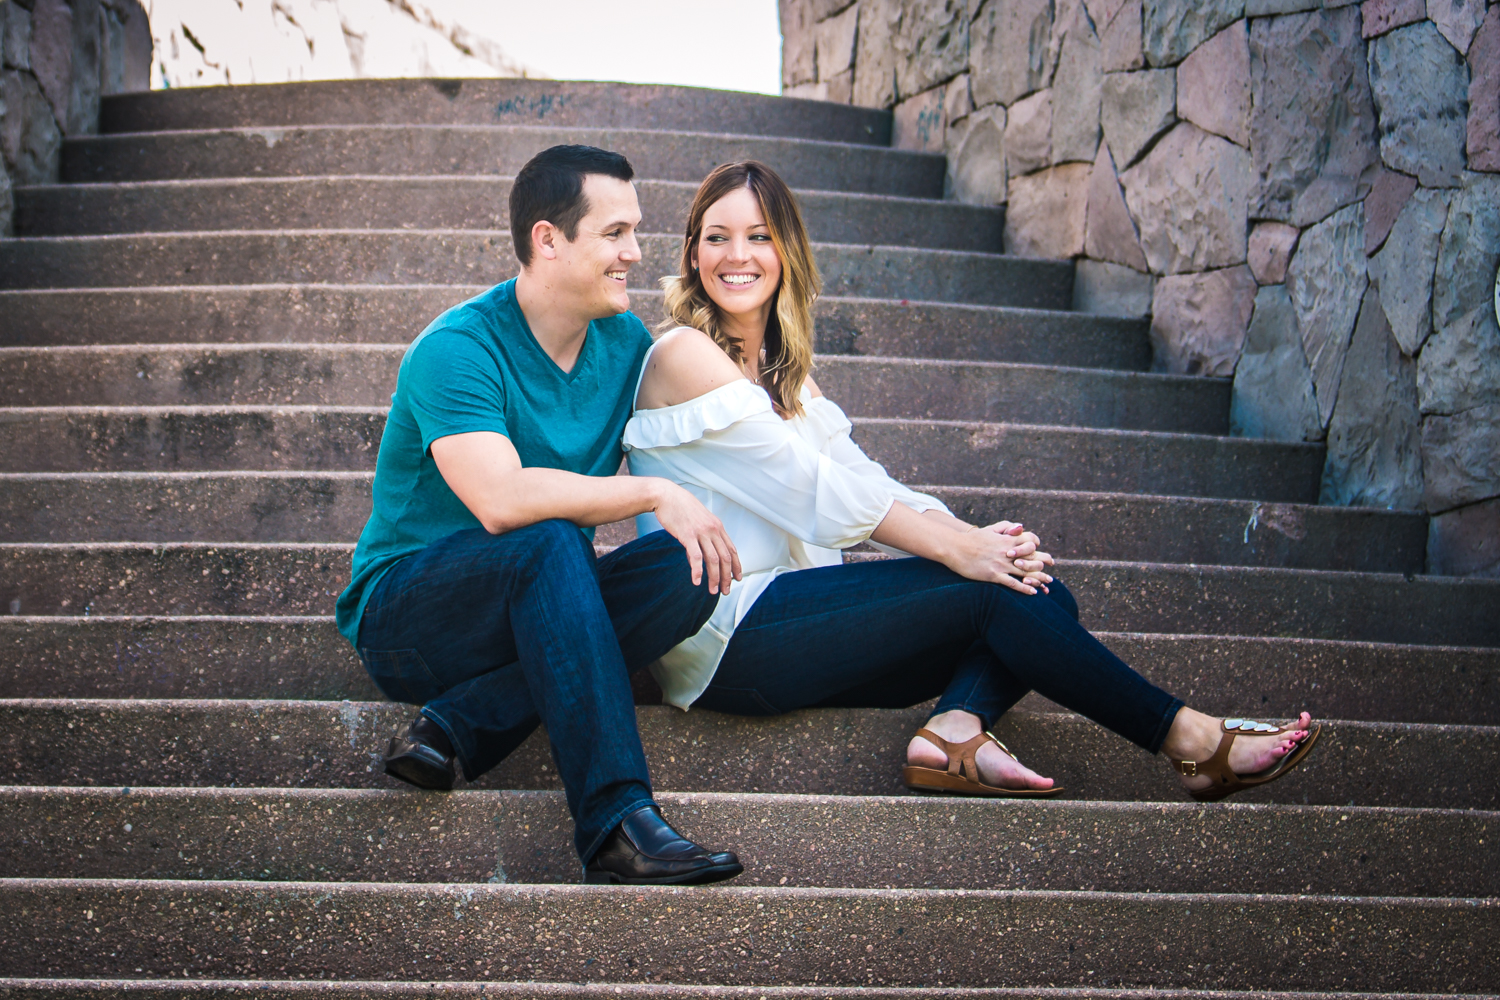 Downtown Denver engagement picture by JMGant Photography.